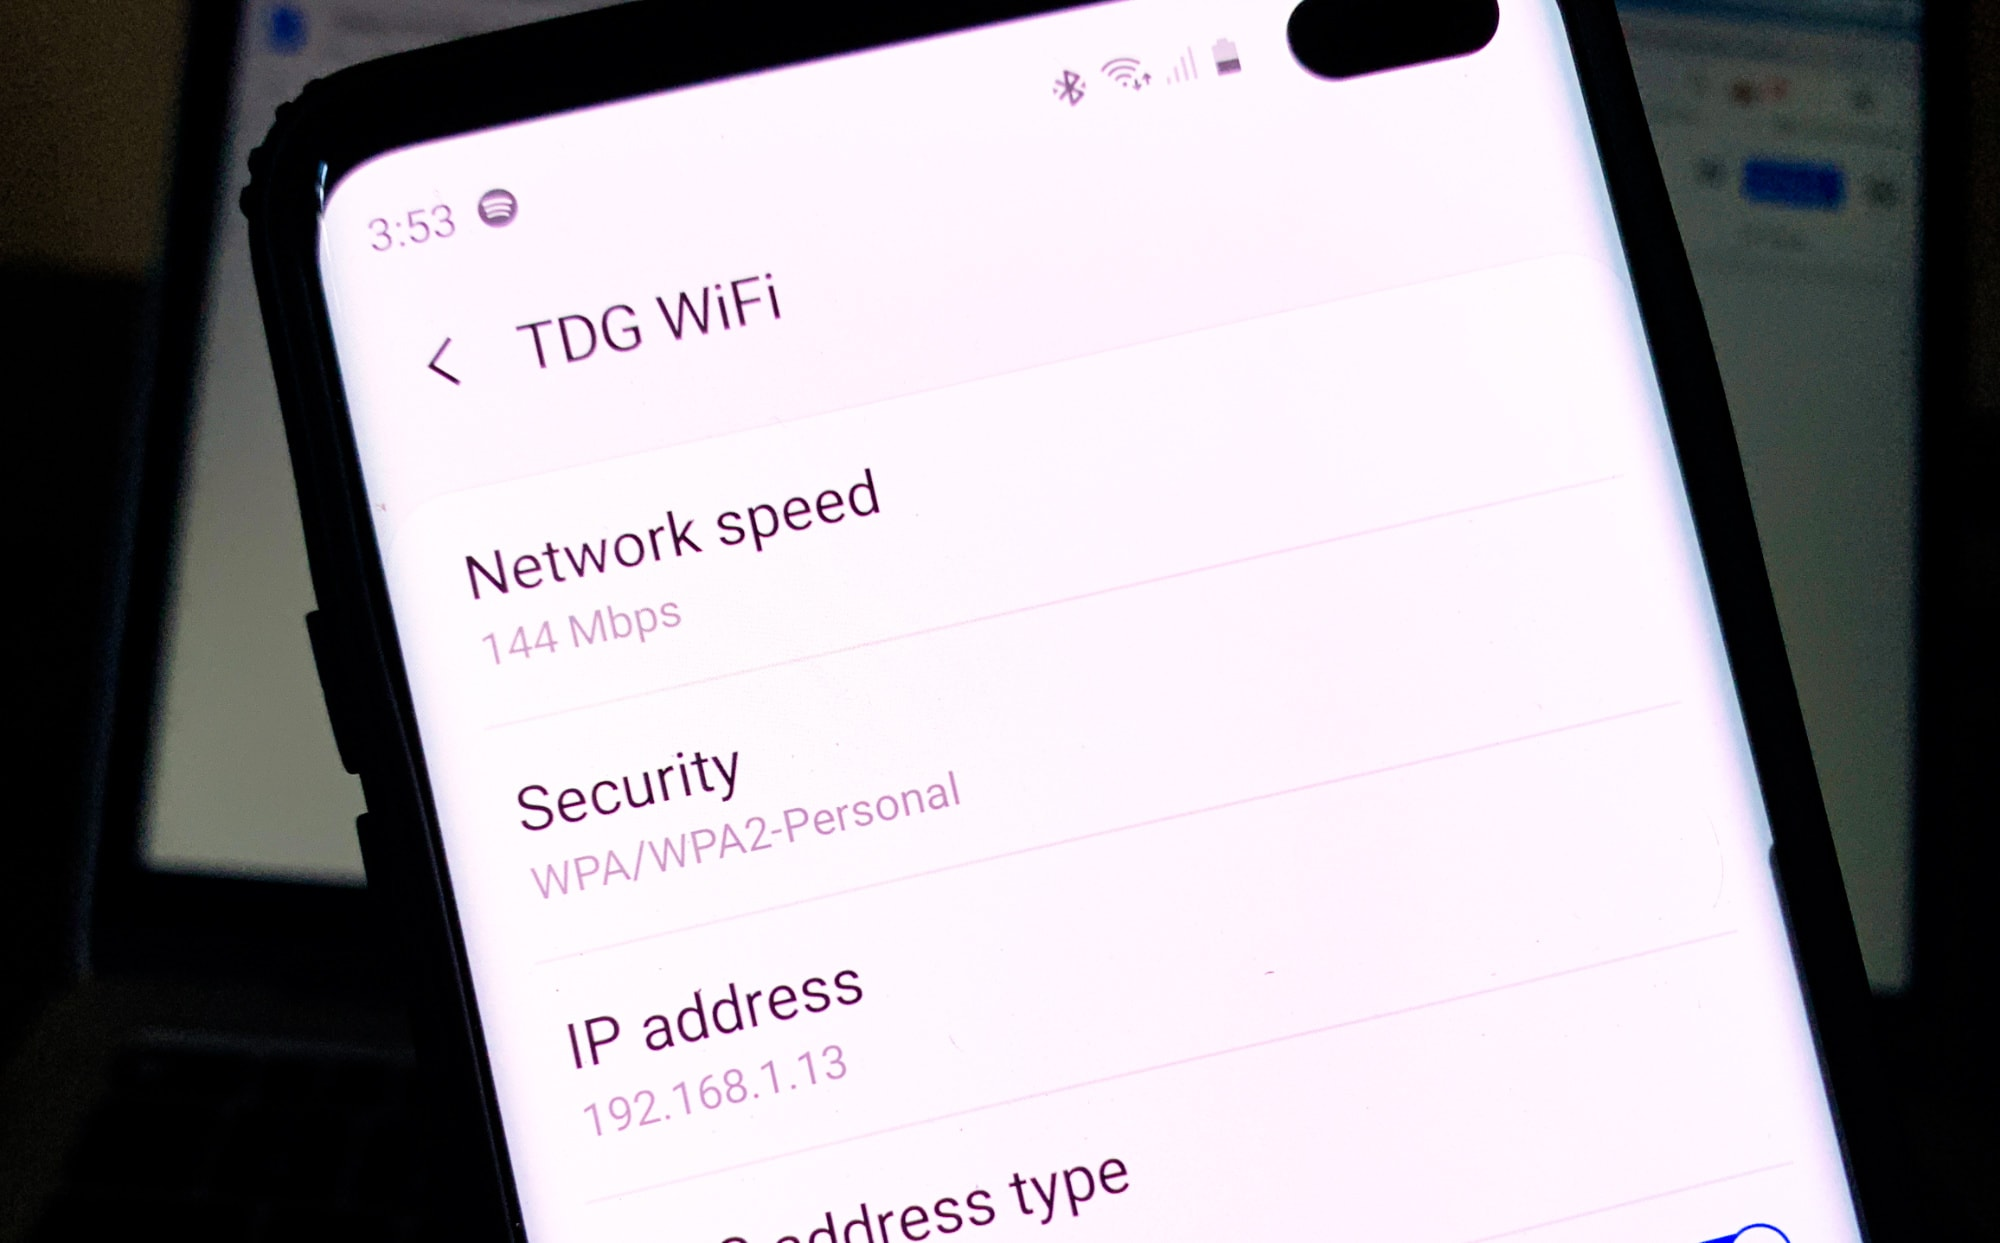 Learn how to fix your Galaxy S10 that keeps disconnecting from the WiFi network